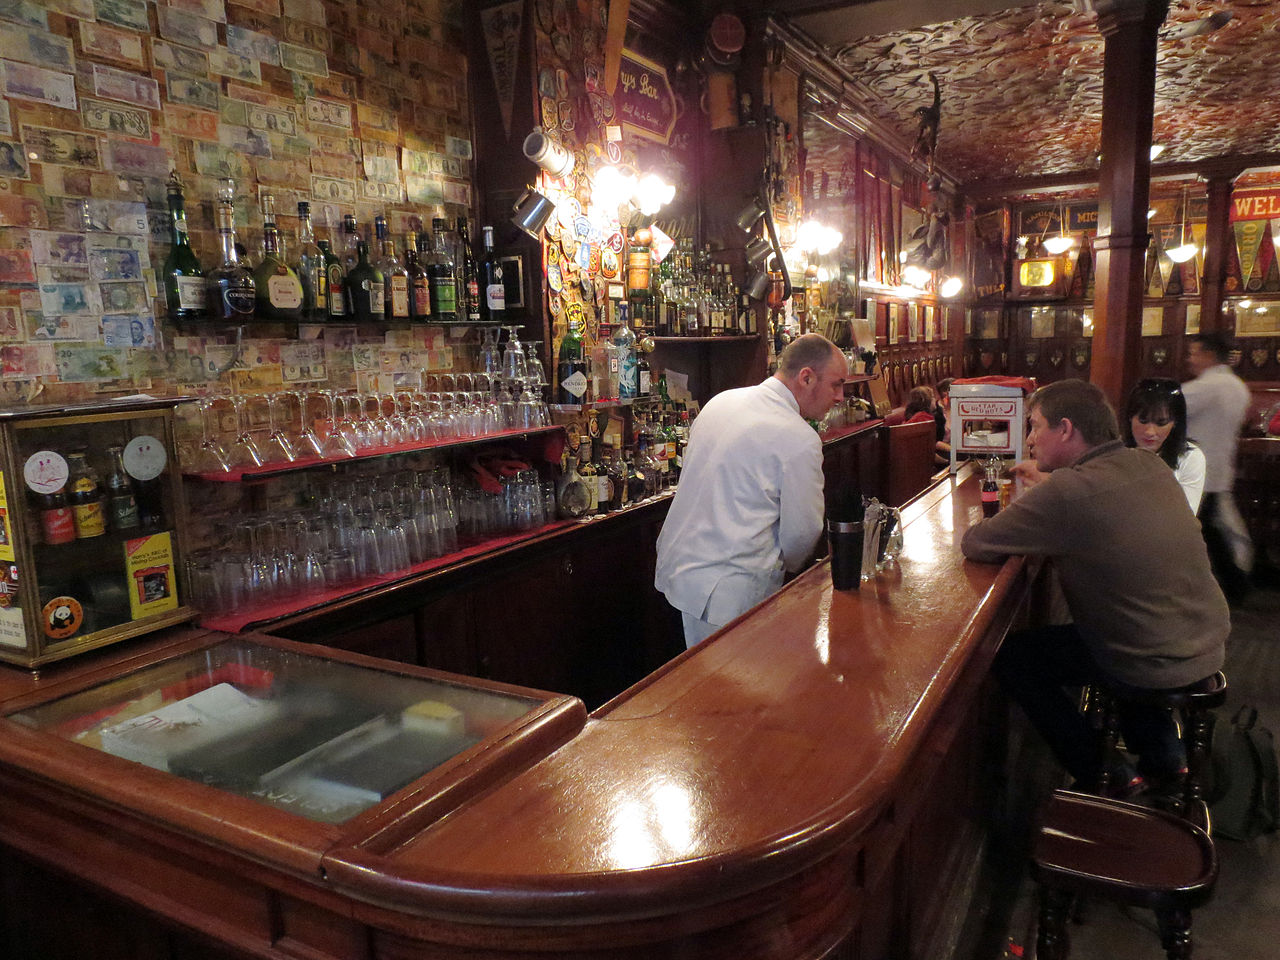 File:Harrys New York Bar 4, Paris 2012.jpg - Wikimedia Commons